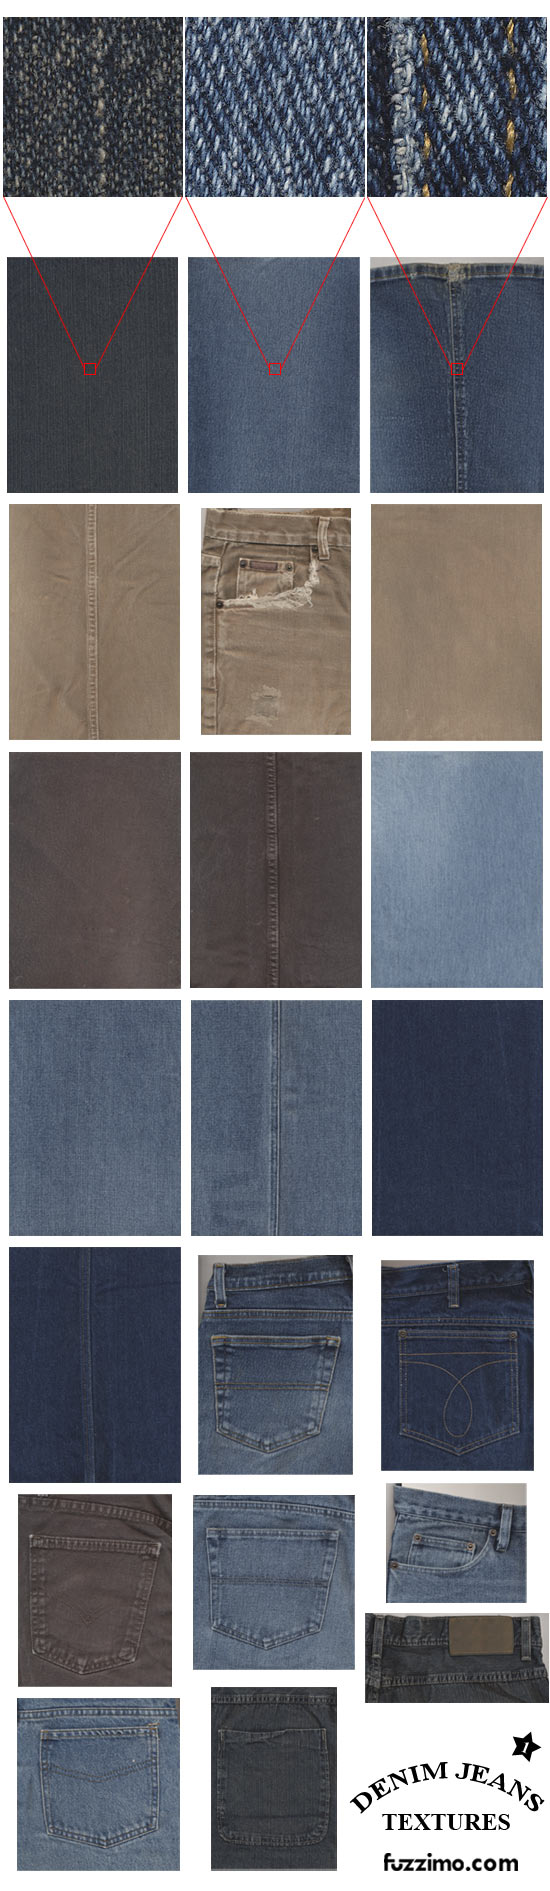 fzm-Denim-Jeans-Textures-(part1)-02